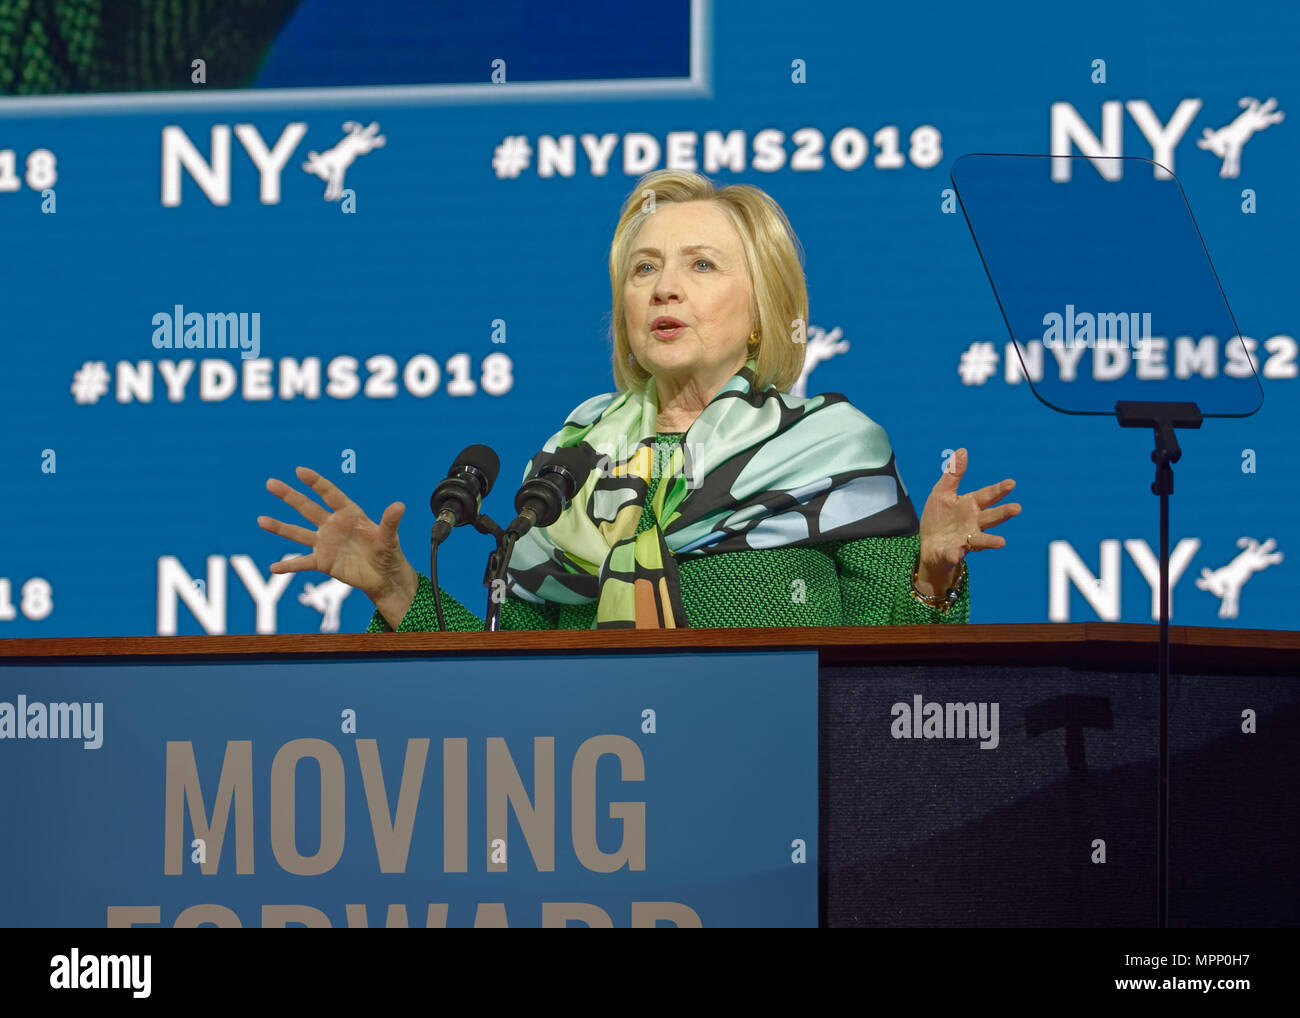 Long Island, USA. 23rd May, 2018. HILLARY CLINTON delivers Keynote Address during Day 1 of New York State Democratic Convention, held at Hofstra University on Long Island. Clinton, the former First Lady and NYS Senator, endorsed the re-election of Gov. A. Cuomo for a third term, and mentioned how Hofstra was the site of her first 2016 debate with Trump. Credit: Ann E Parry/Alamy Live News Stock Photo